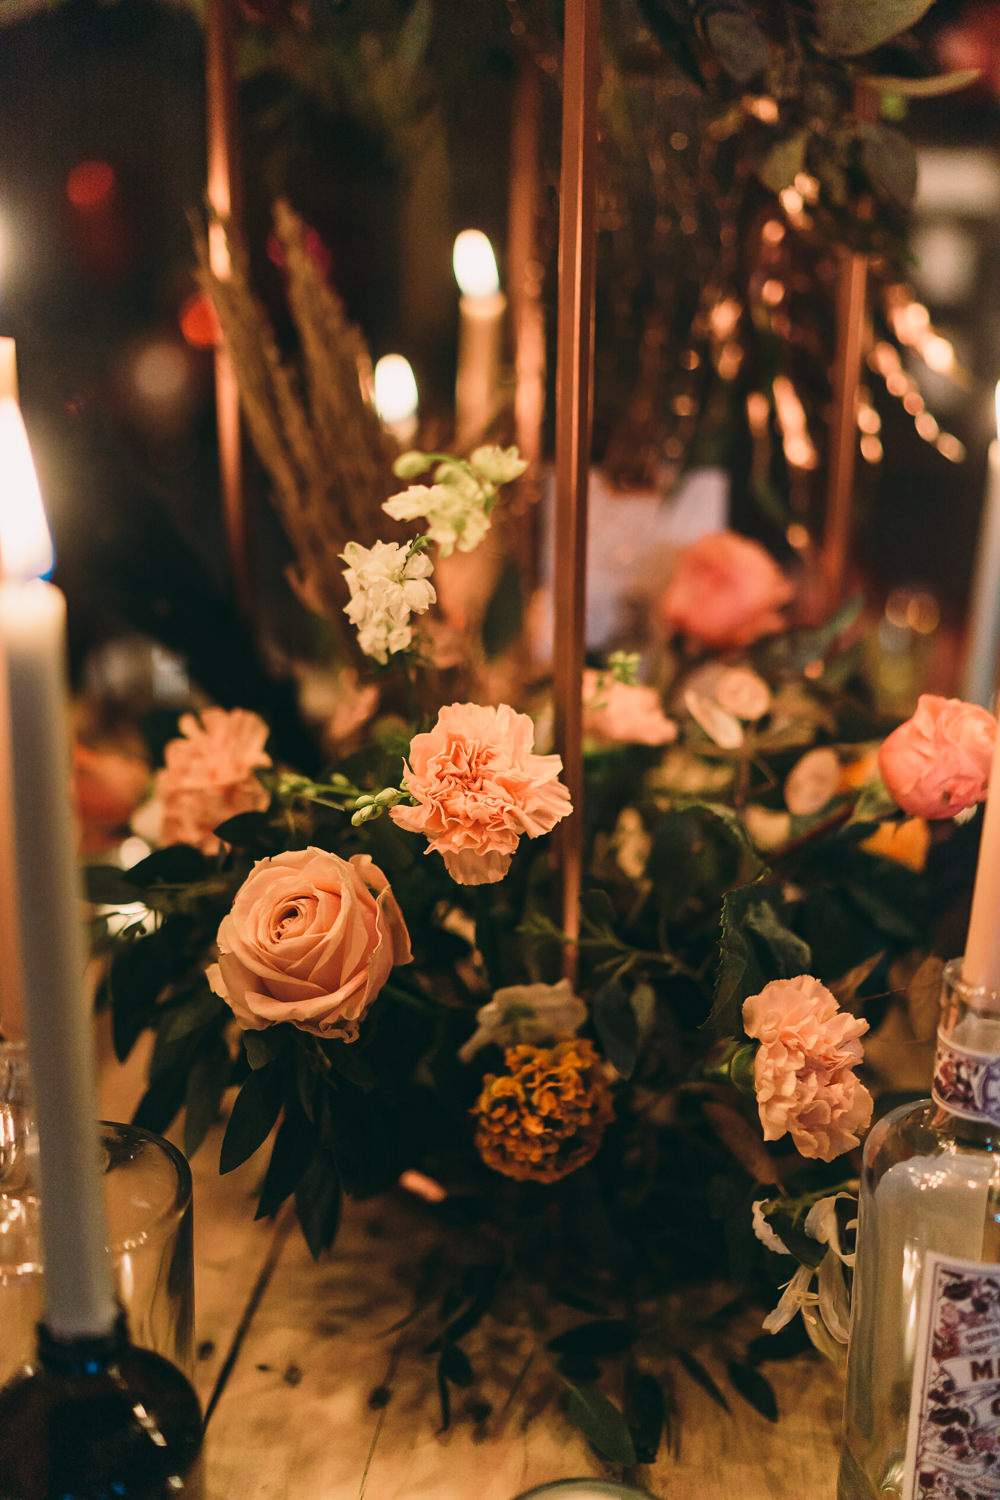 Table Tablescape Decor Decoration Flowers Candles Centrepiece Balloon Wedding Ideas Leesha Williams Photography